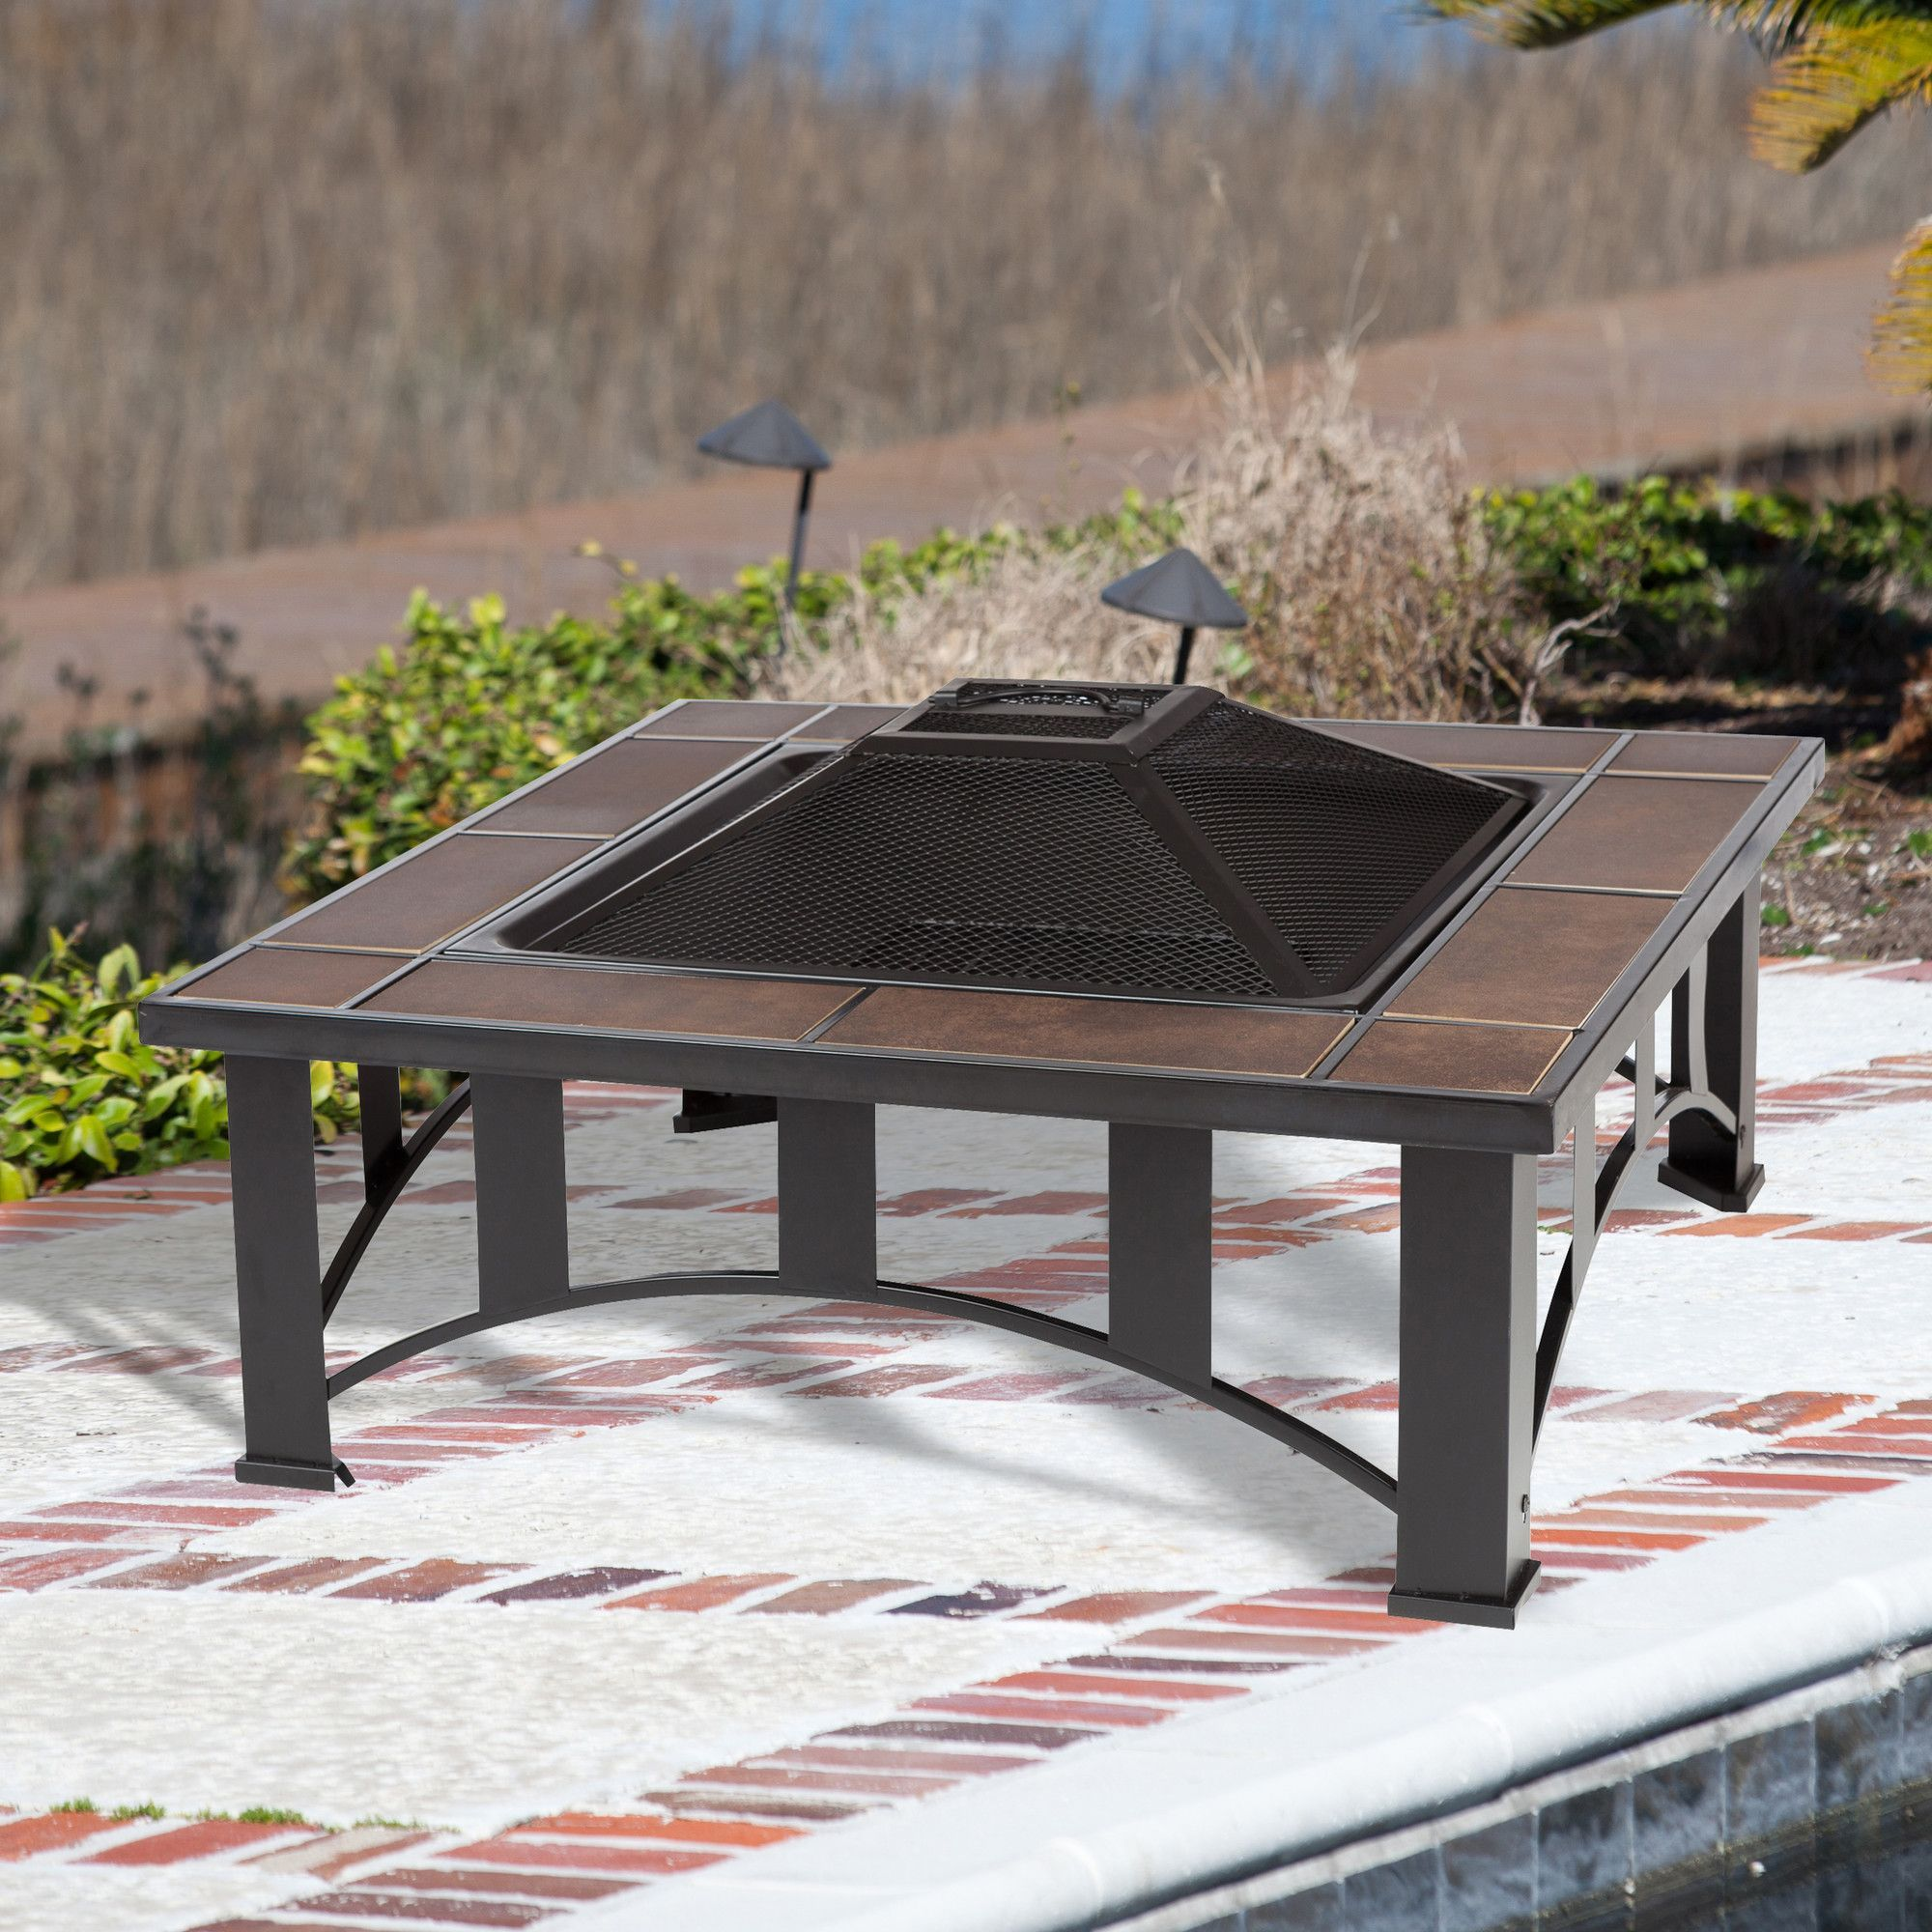 Fireplace tools Lowes Fresh Steel Wood Burning Fire Pit Table Products